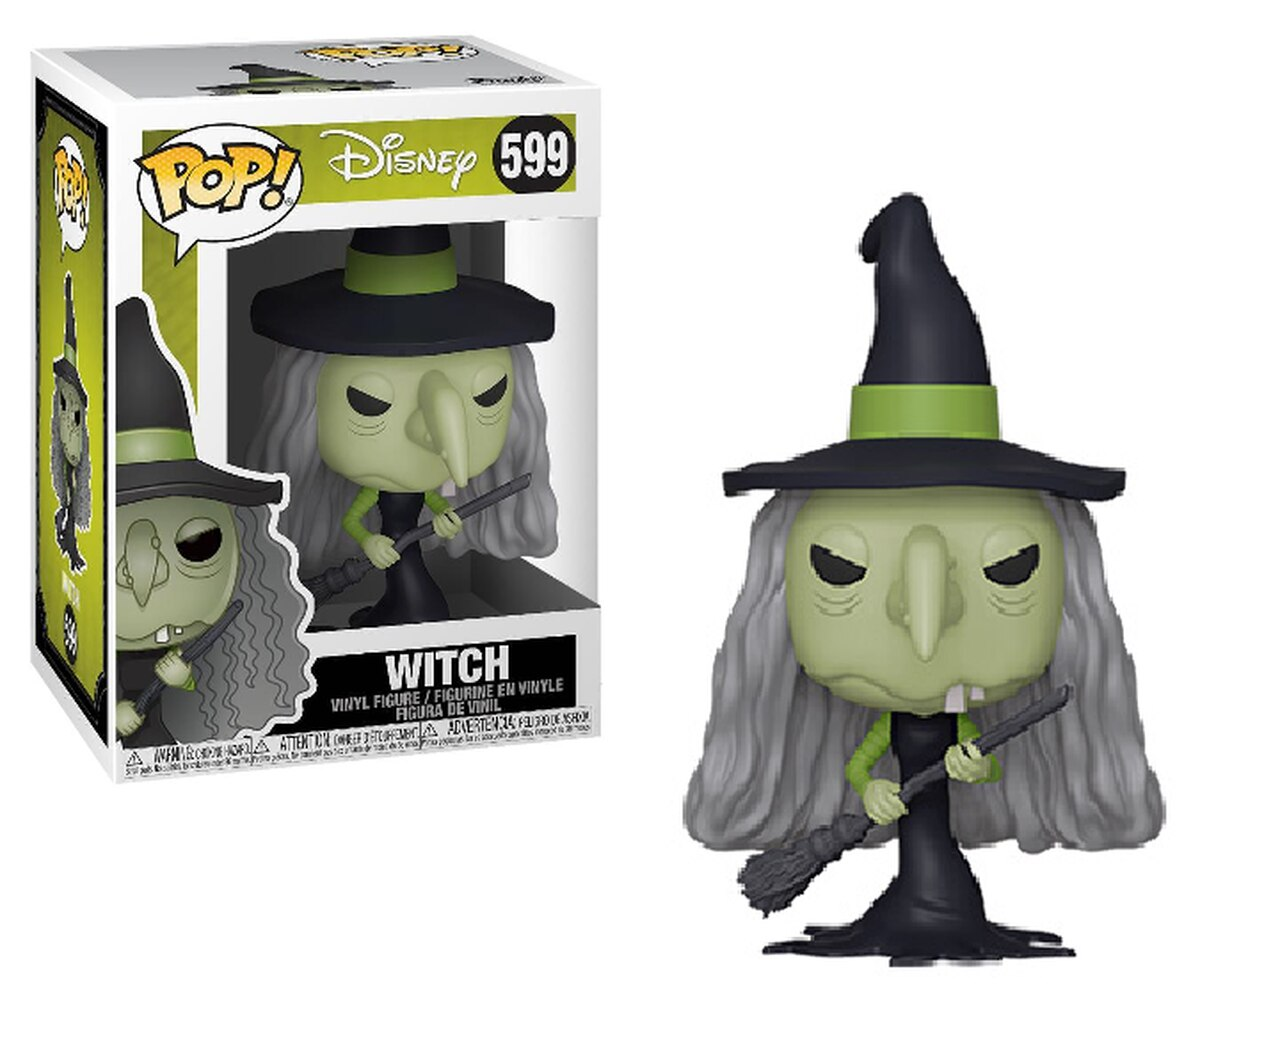 POP! Disney: Nightmare Before Christmas - Witch Vinyl Figure #599